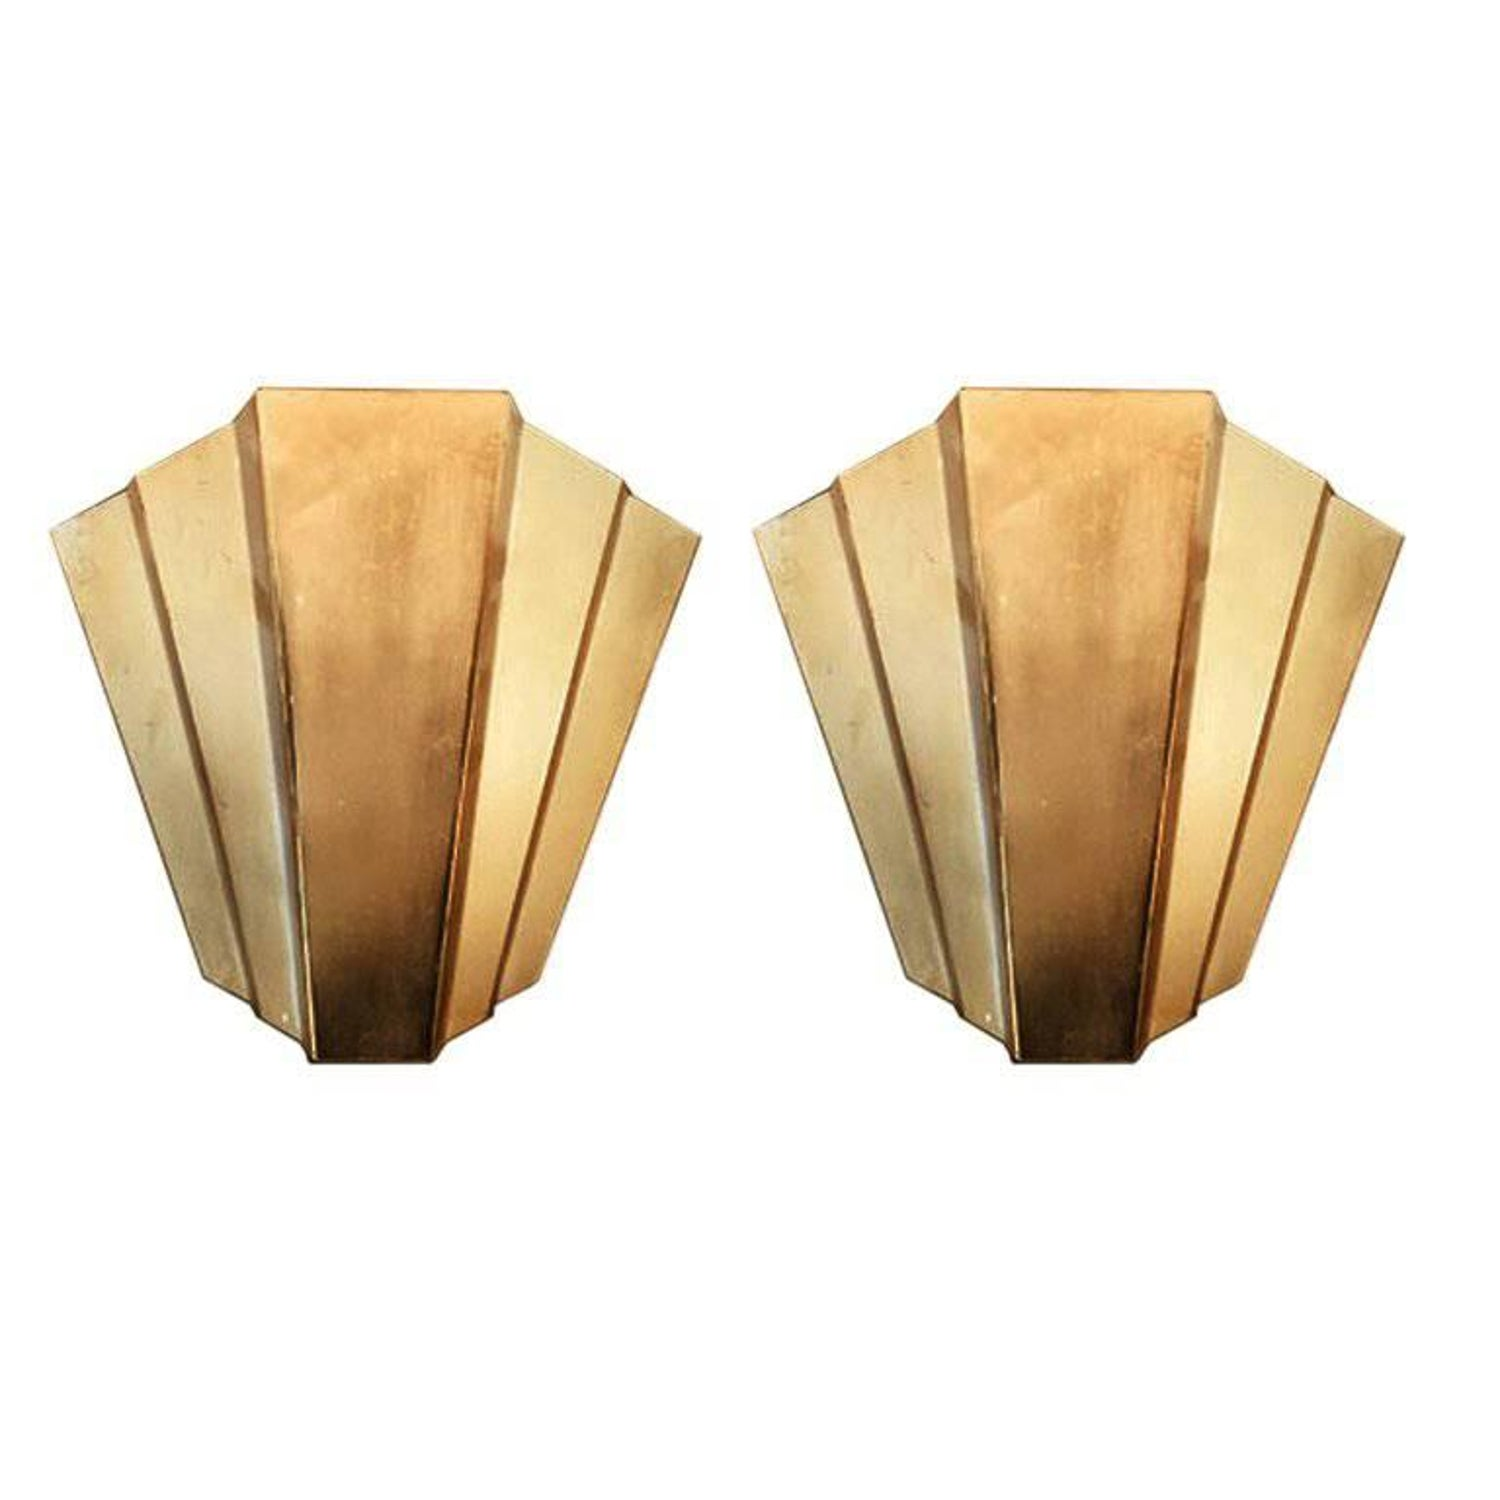 Art Deco Slip Shade Wall Sconces, 1920s-1930s For Sale at 1stdibs